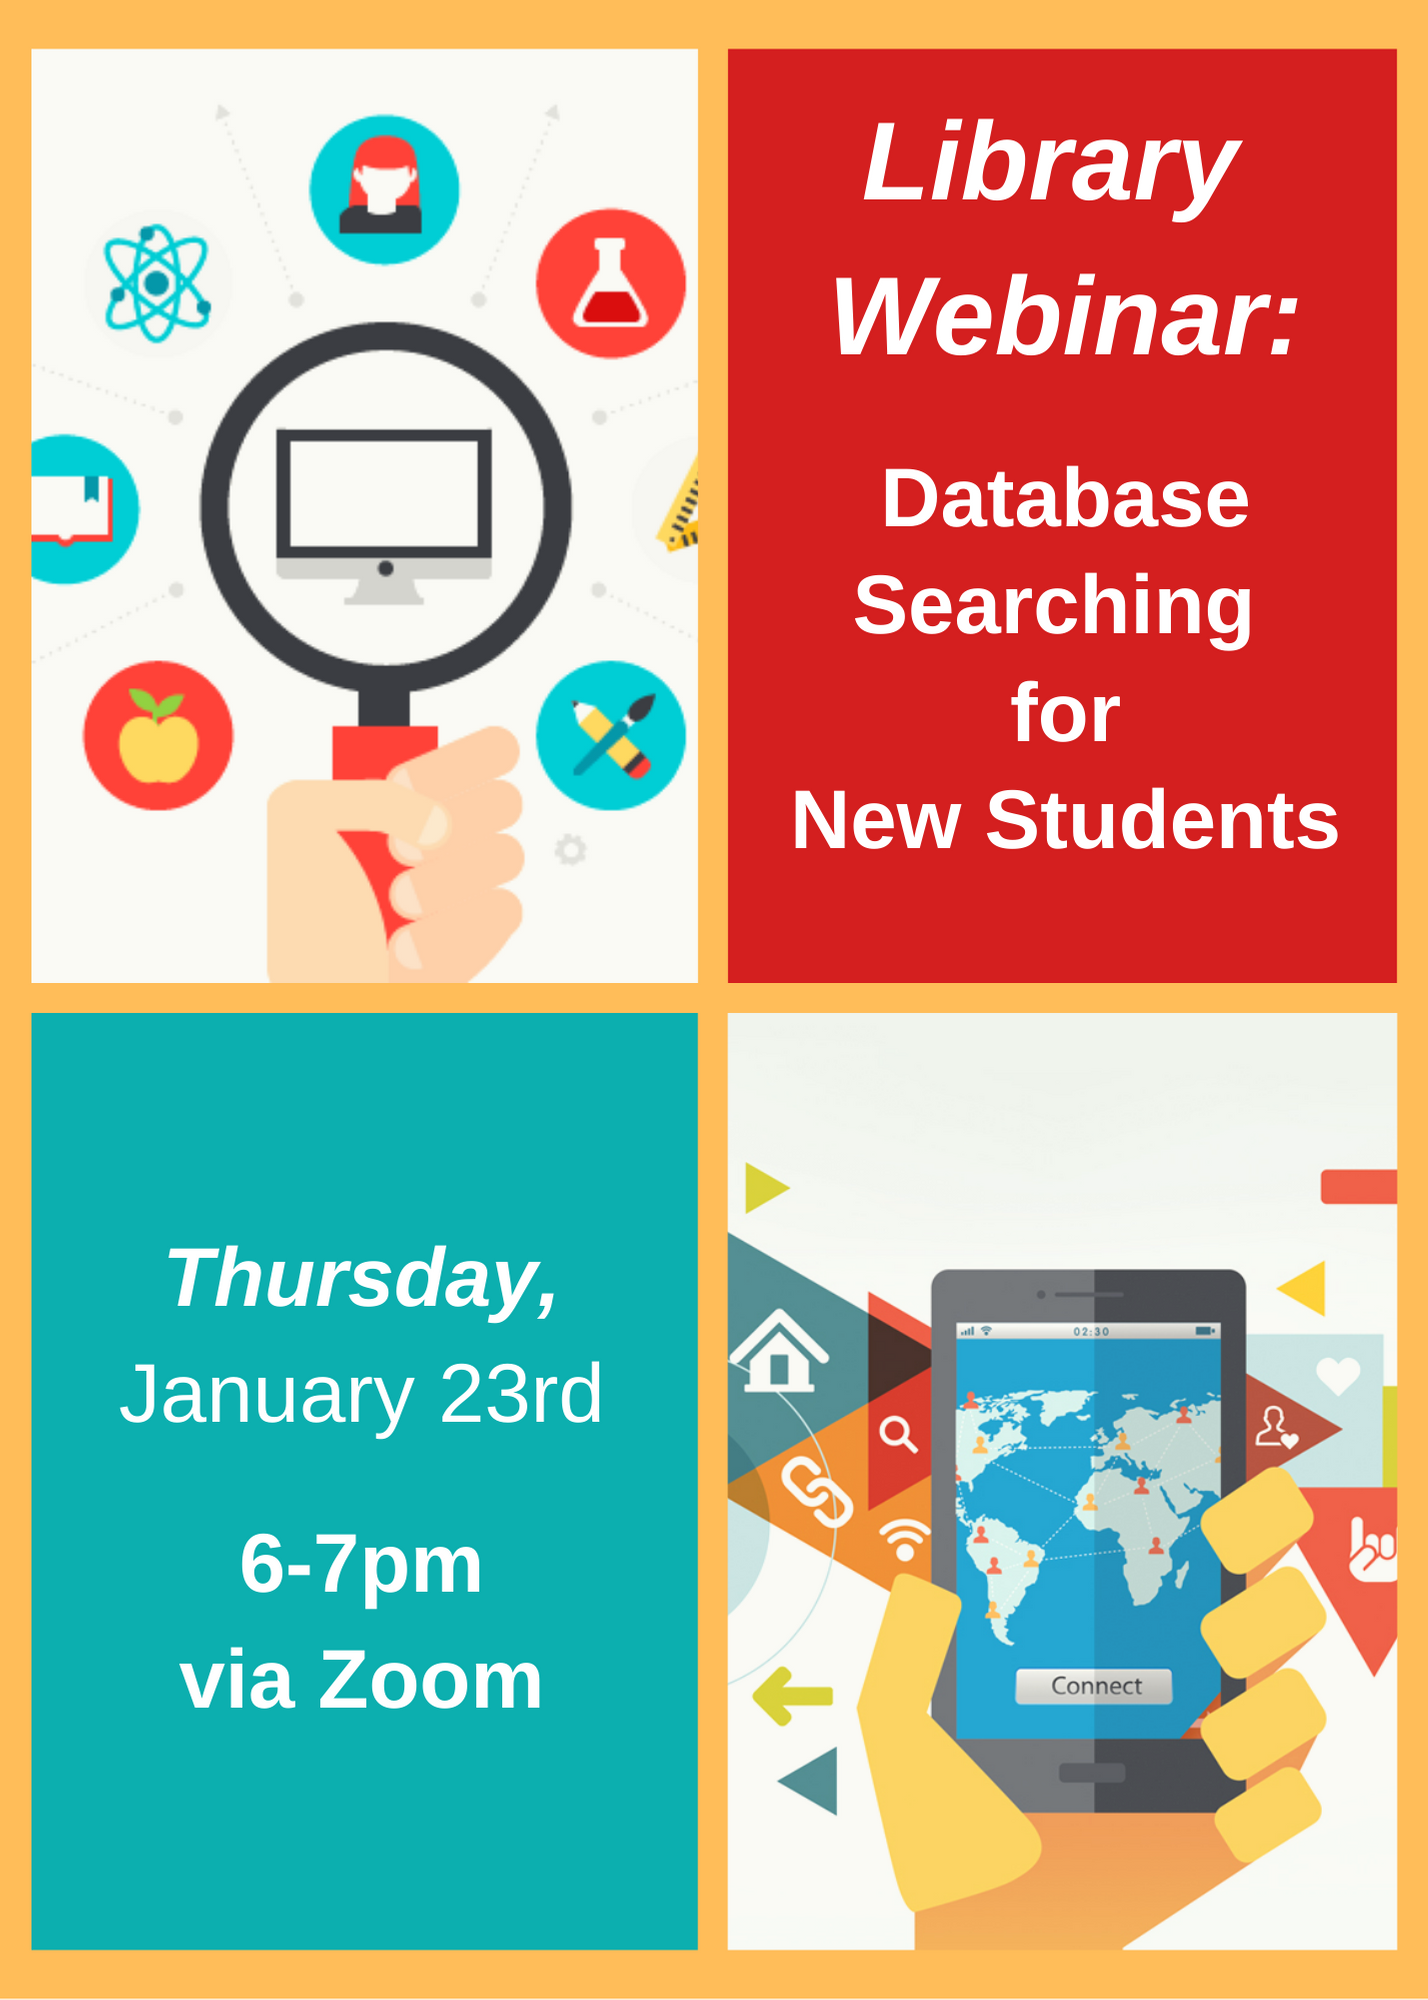 Library Webinar: Database Searching for New Students - Thursday, January 23, 6pm through 7pm. Join Instruction Librarian Jackie Hill for a guided tour of the Moye Library website and the many resources available to you to help make your research easier and more successful.